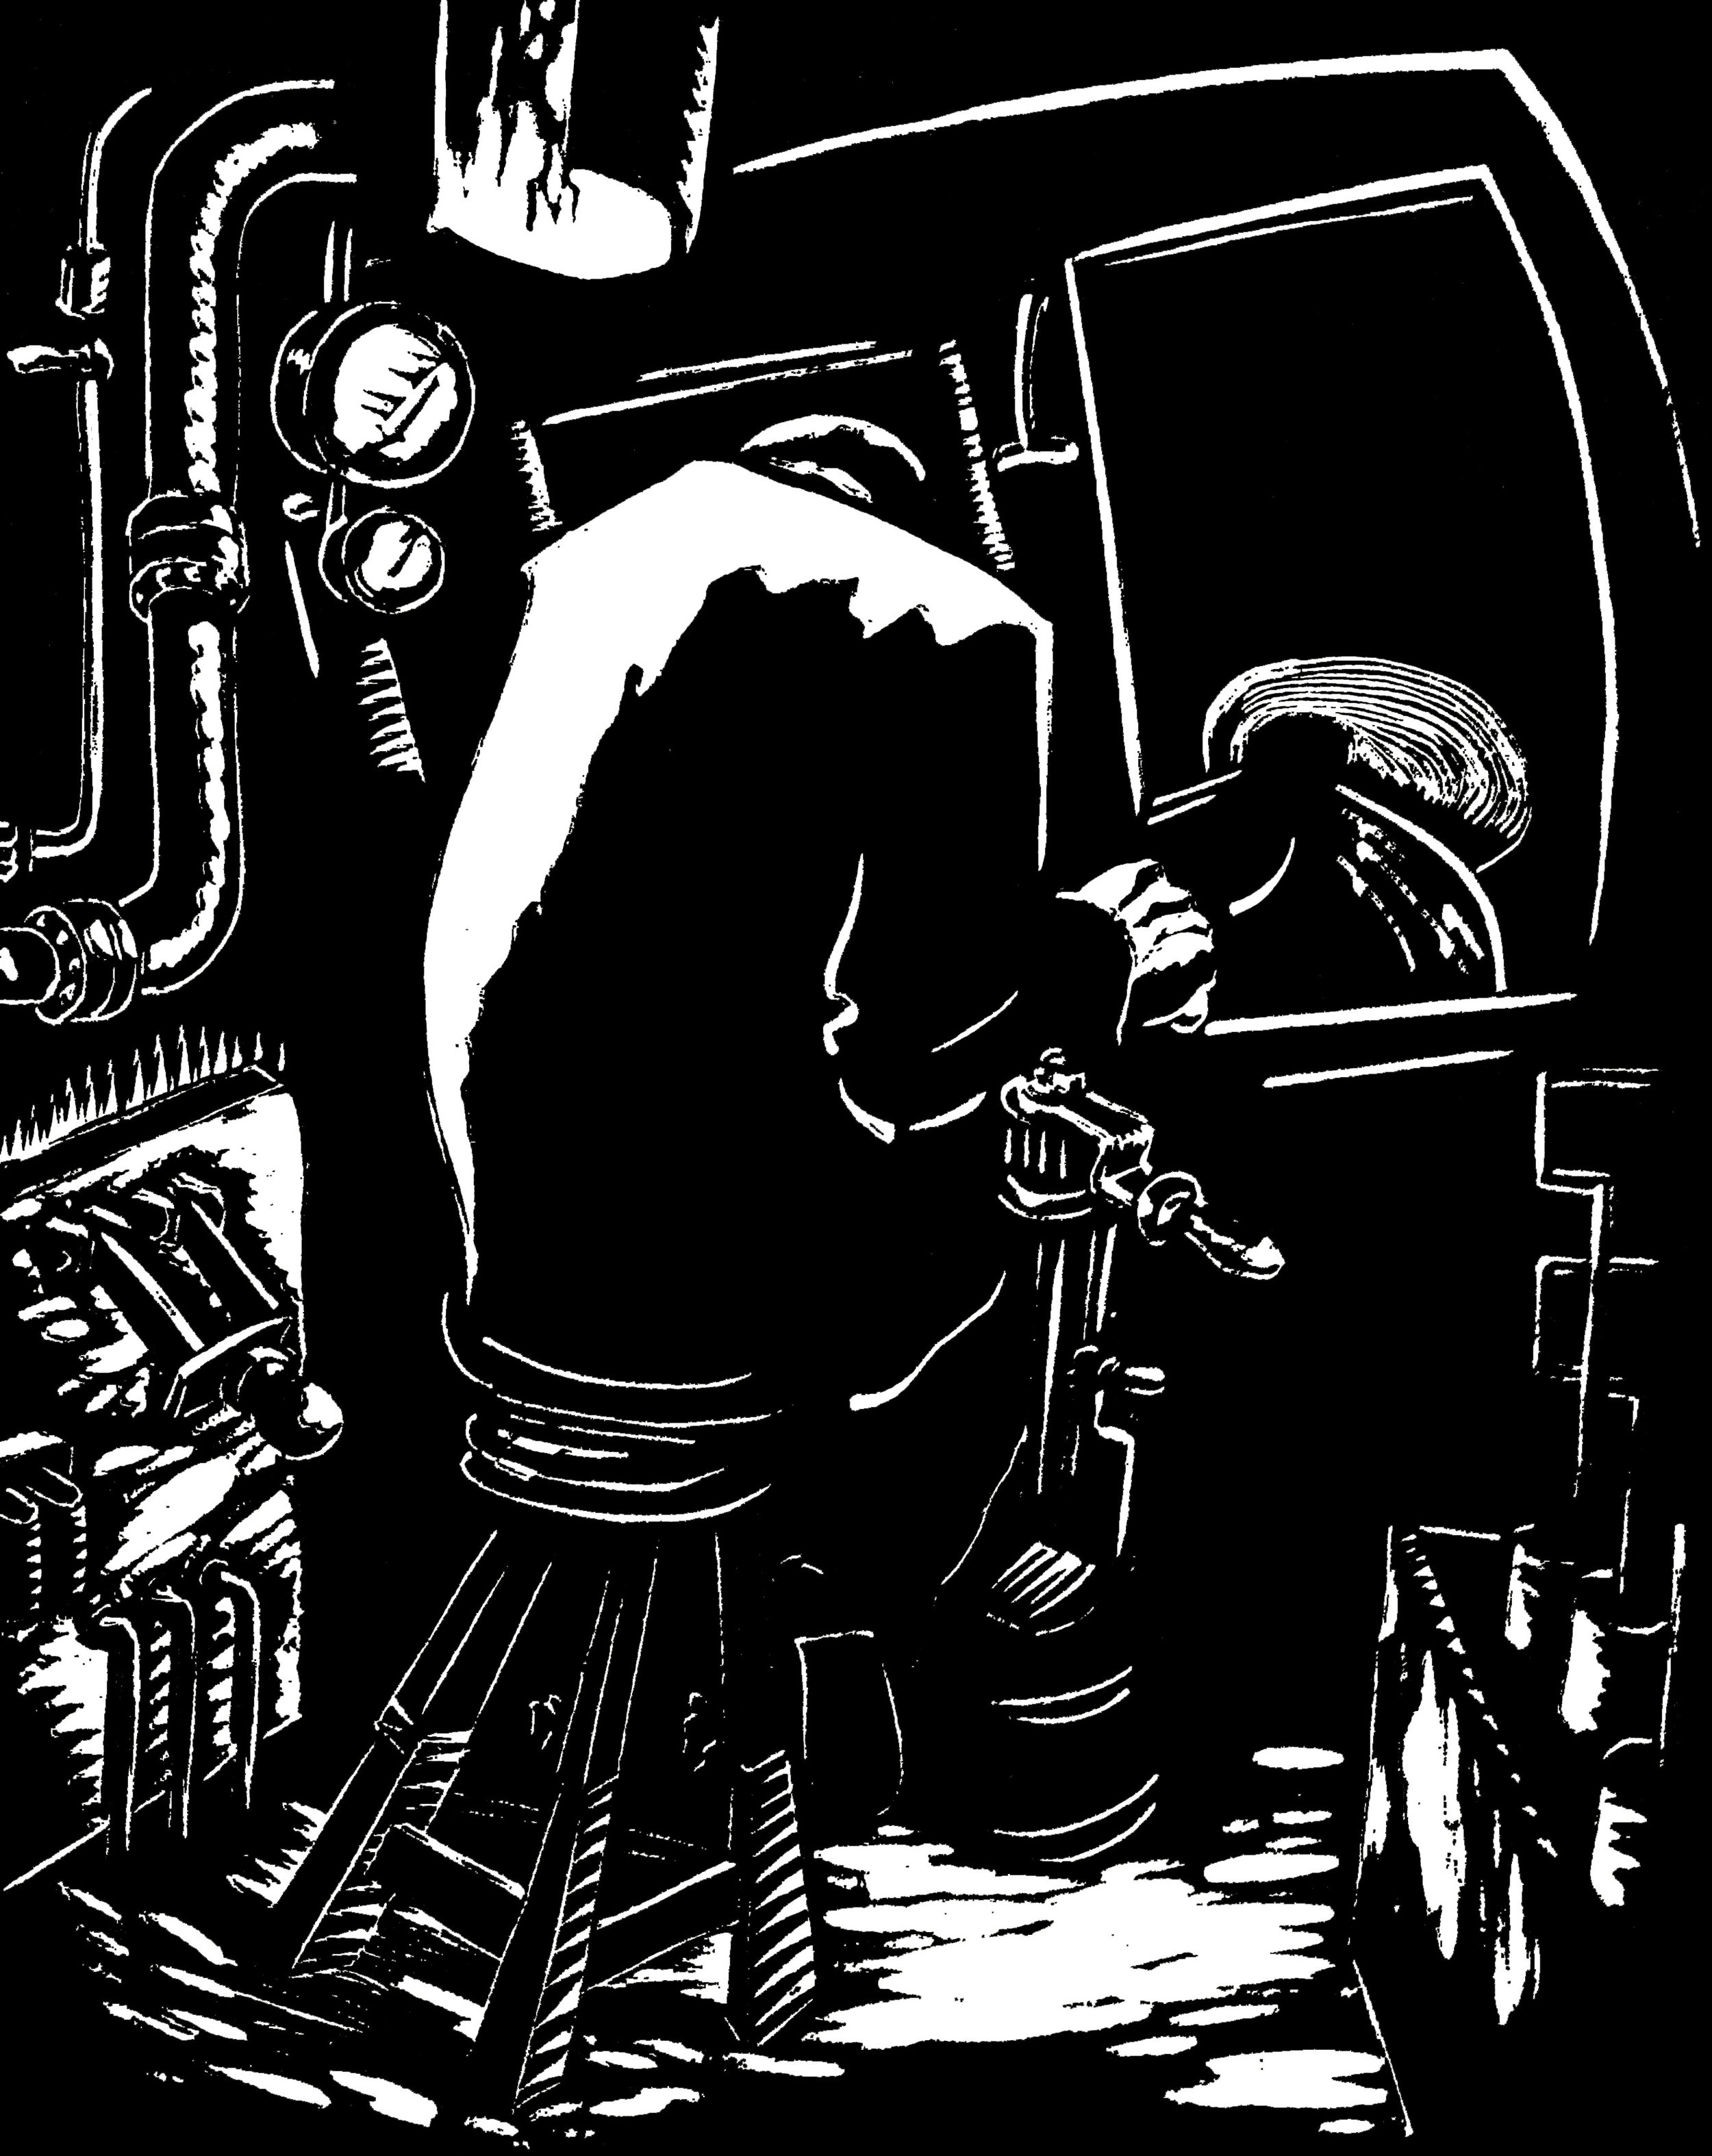 Subway Train Driver linocut.jpg